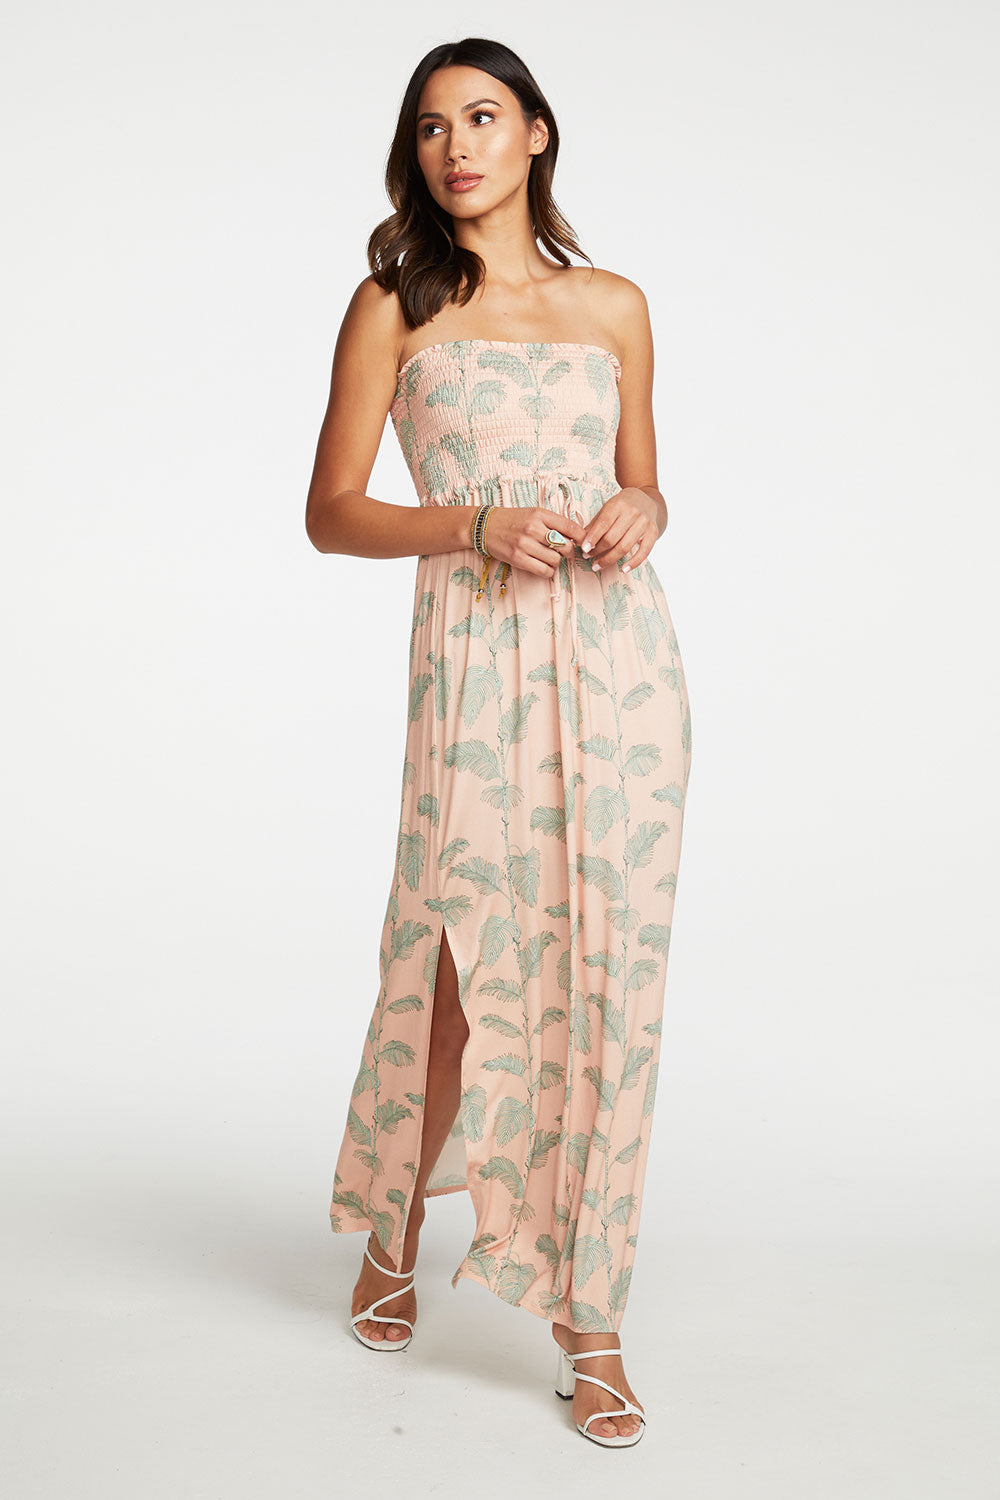 Cool Jersey Smocked Strapless Maxi Dress with Side Slits BCA chaserbrand4.myshopify.com